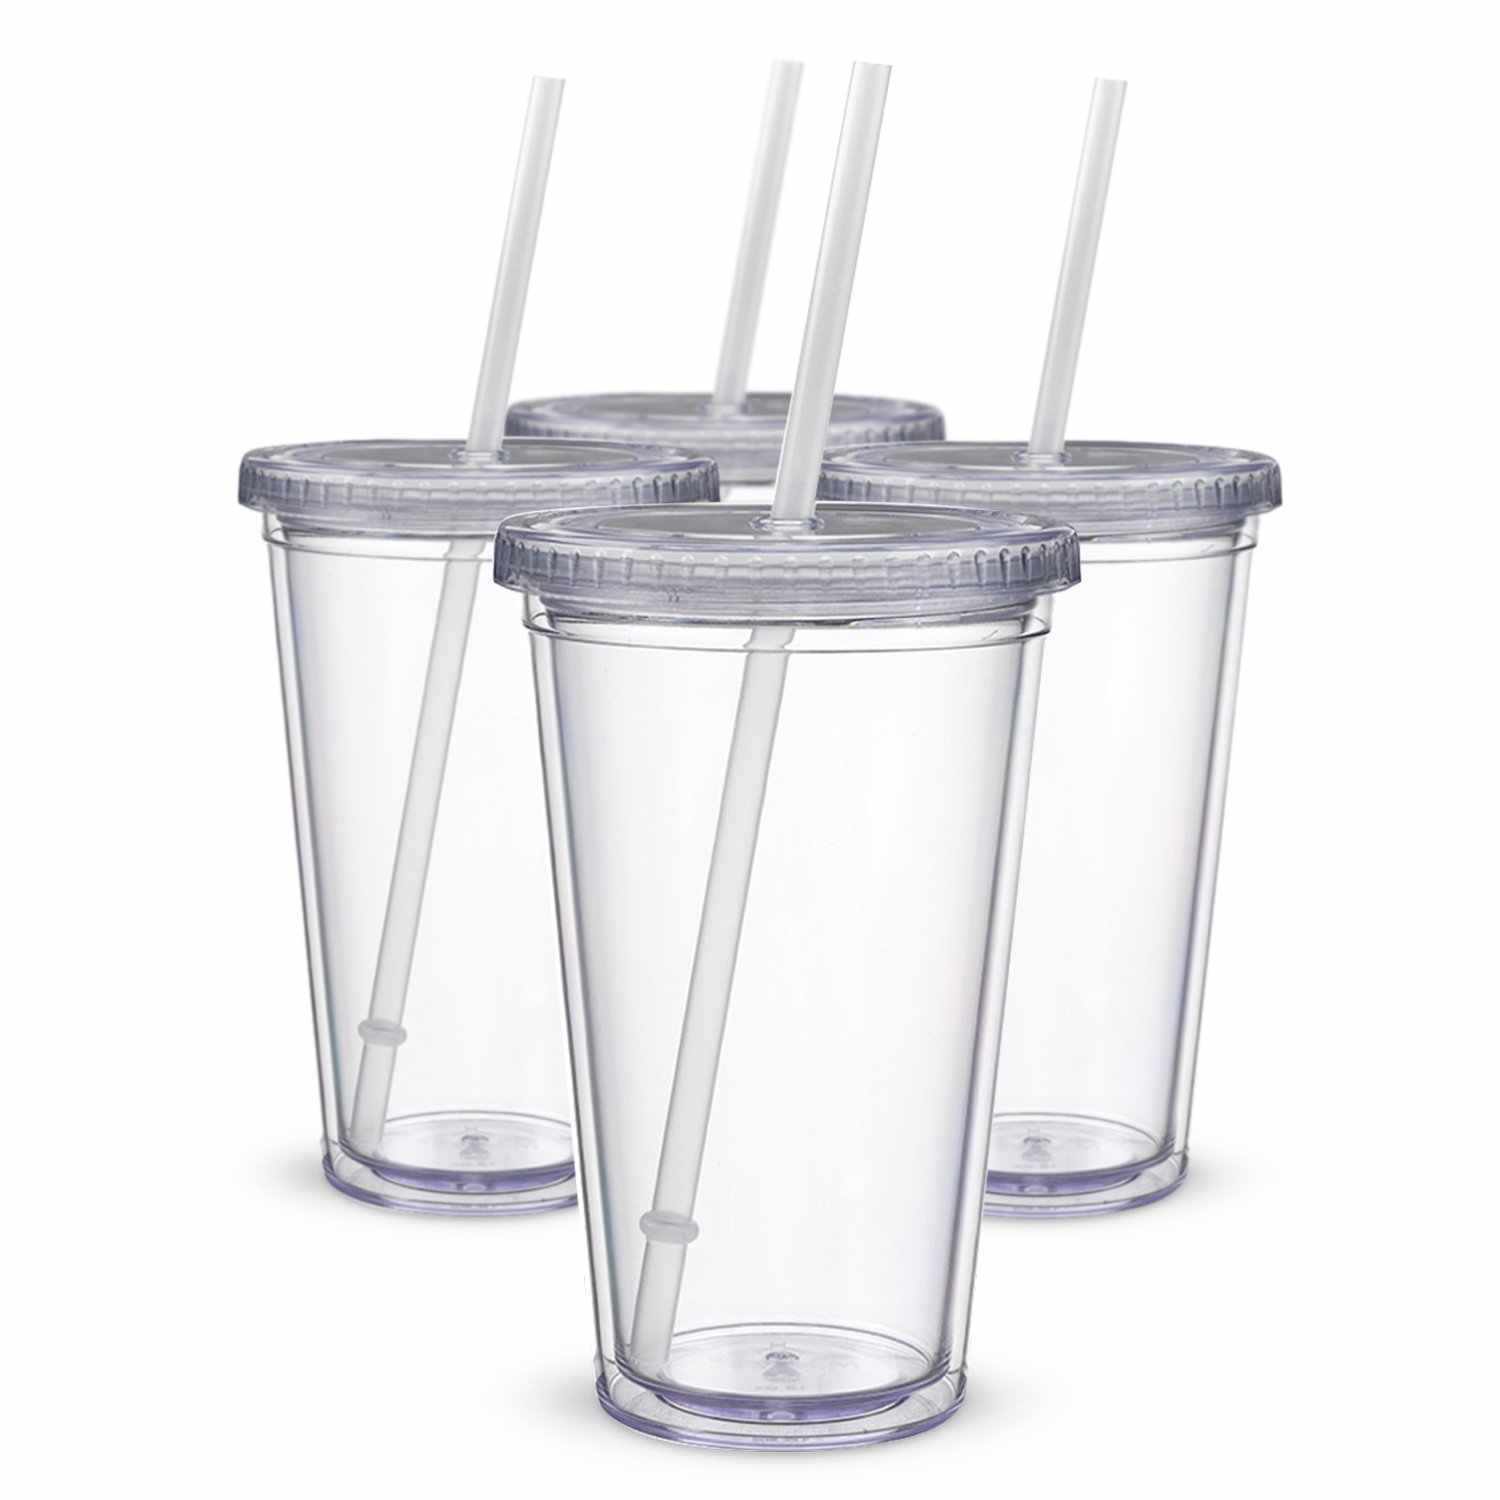 c0b4e40a8b6 Classic Insulated Tumblers 16 oz. Double Wall Acrylic 4 pack Straw Type  Water Bottles Clear